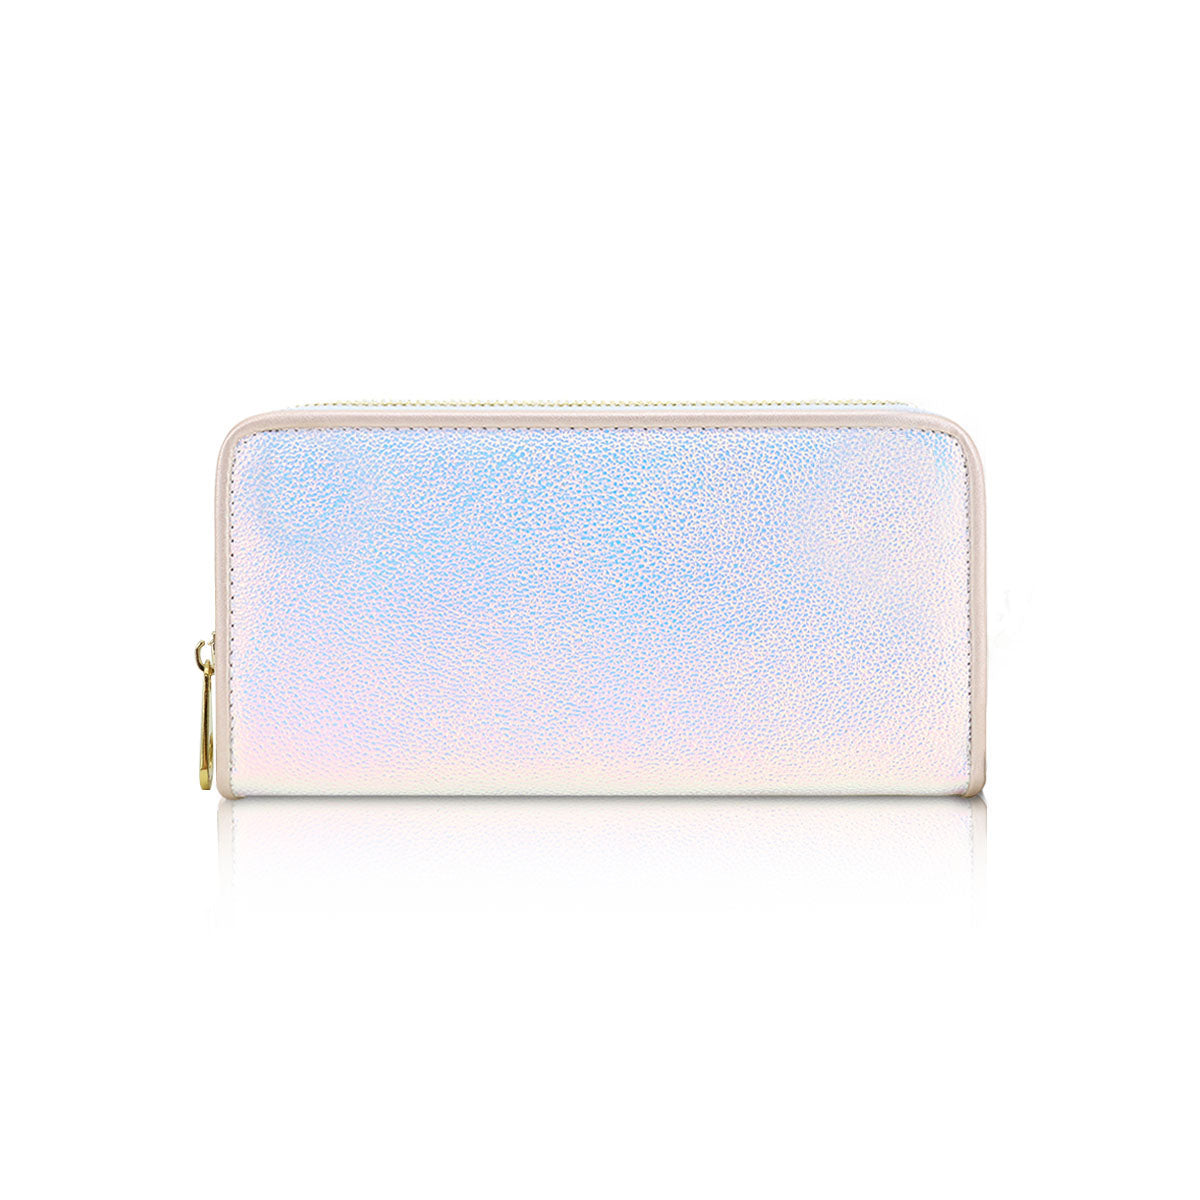 LYDC Ladies Single Zip Metallic Purse